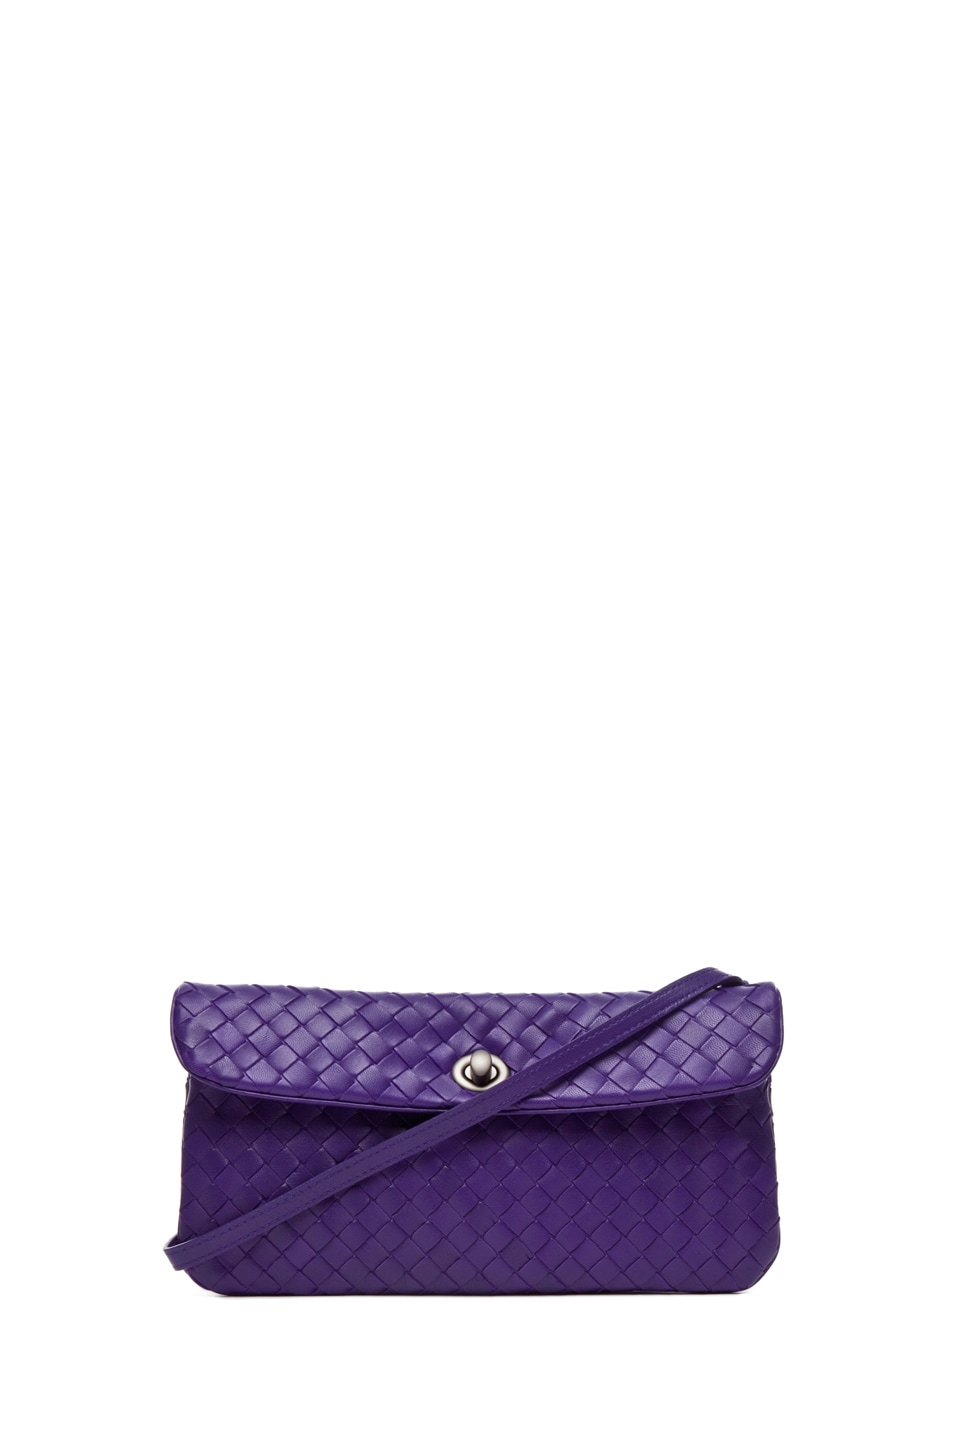 Image 1 of Bottega Veneta Crossbody Bag in Violet